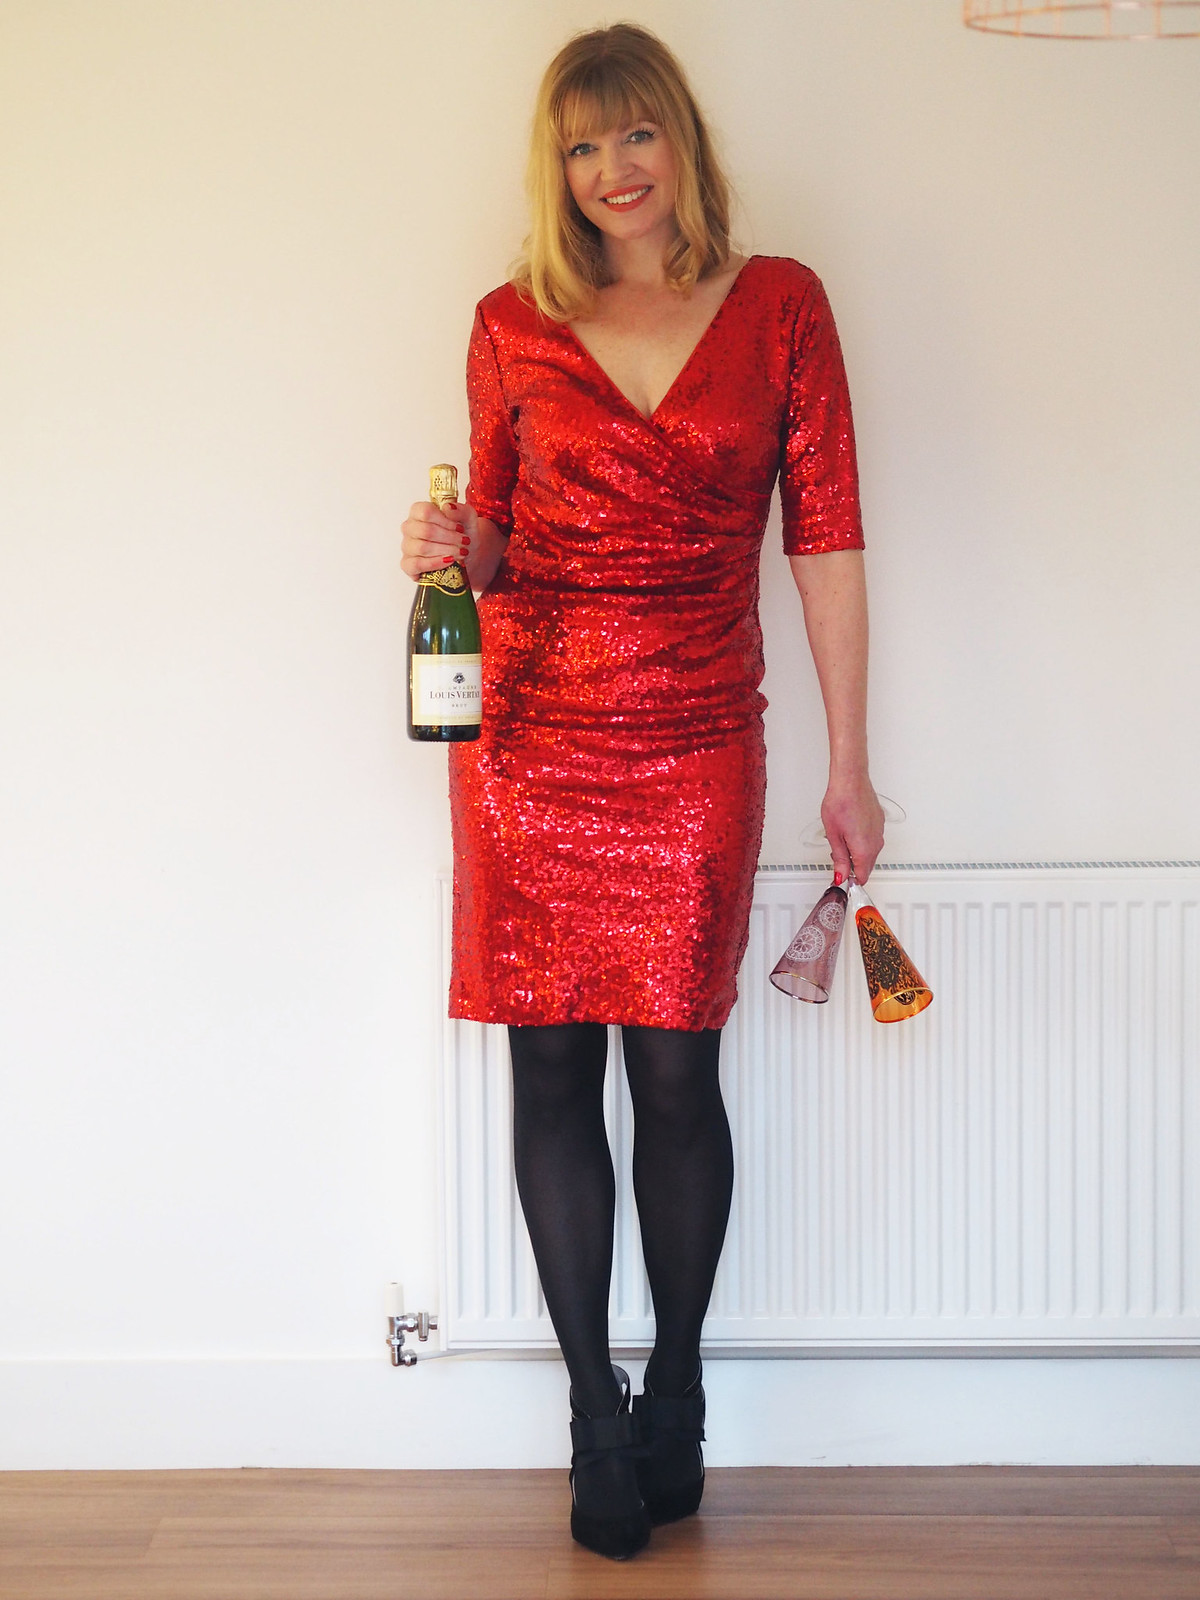 Liz of What Lizzy Loves  in a Christmas party outfit, over 40 style